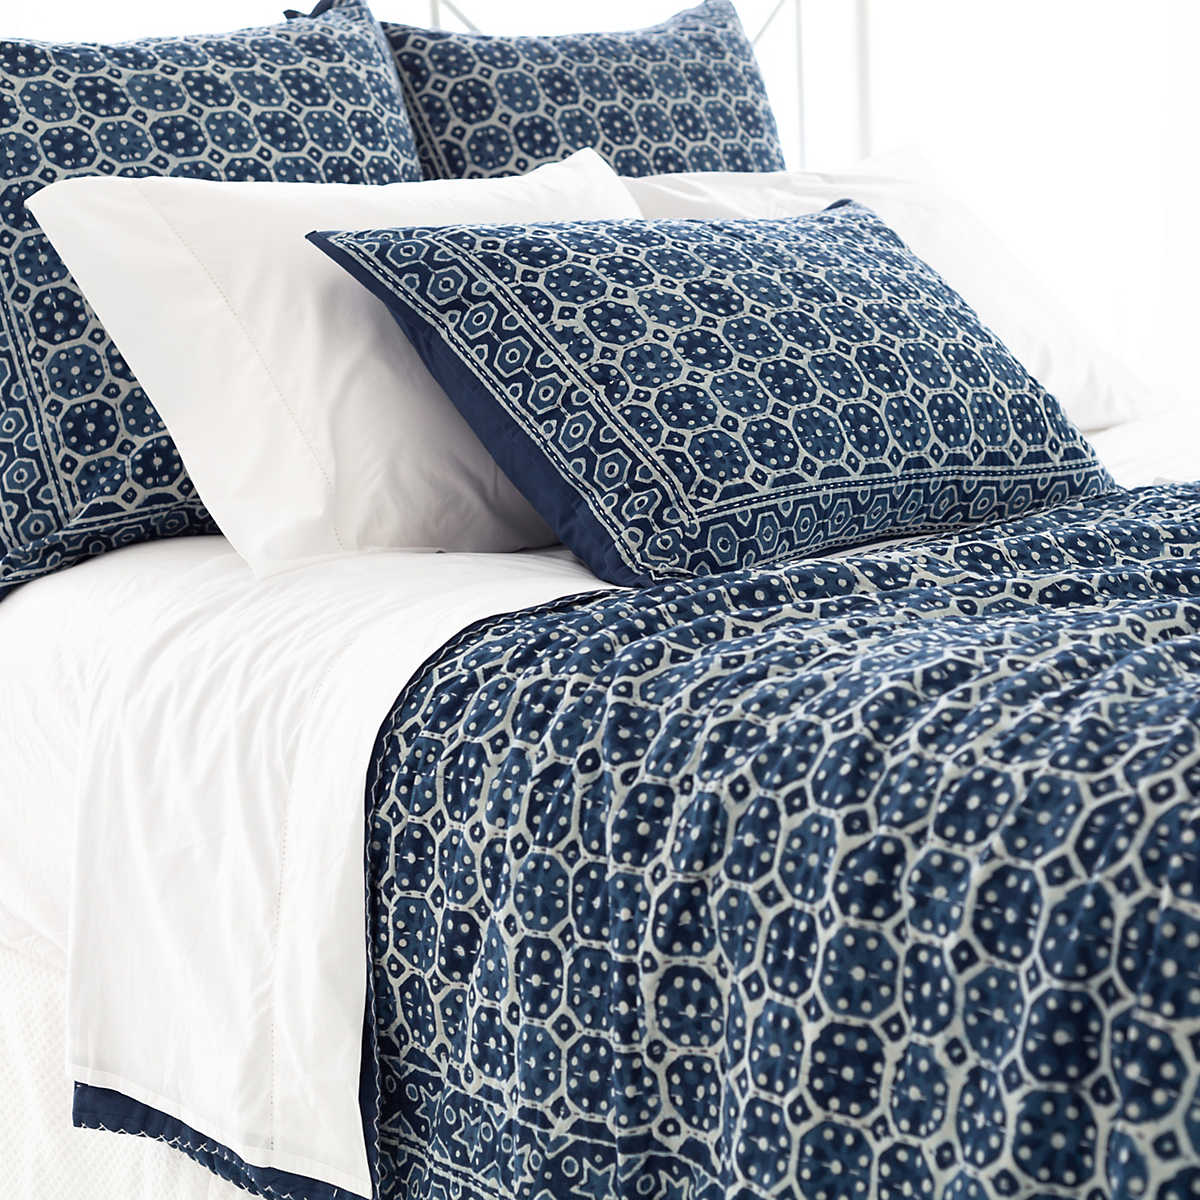 Delightful Indigo Bed Linen Part - 9: Annie Selke